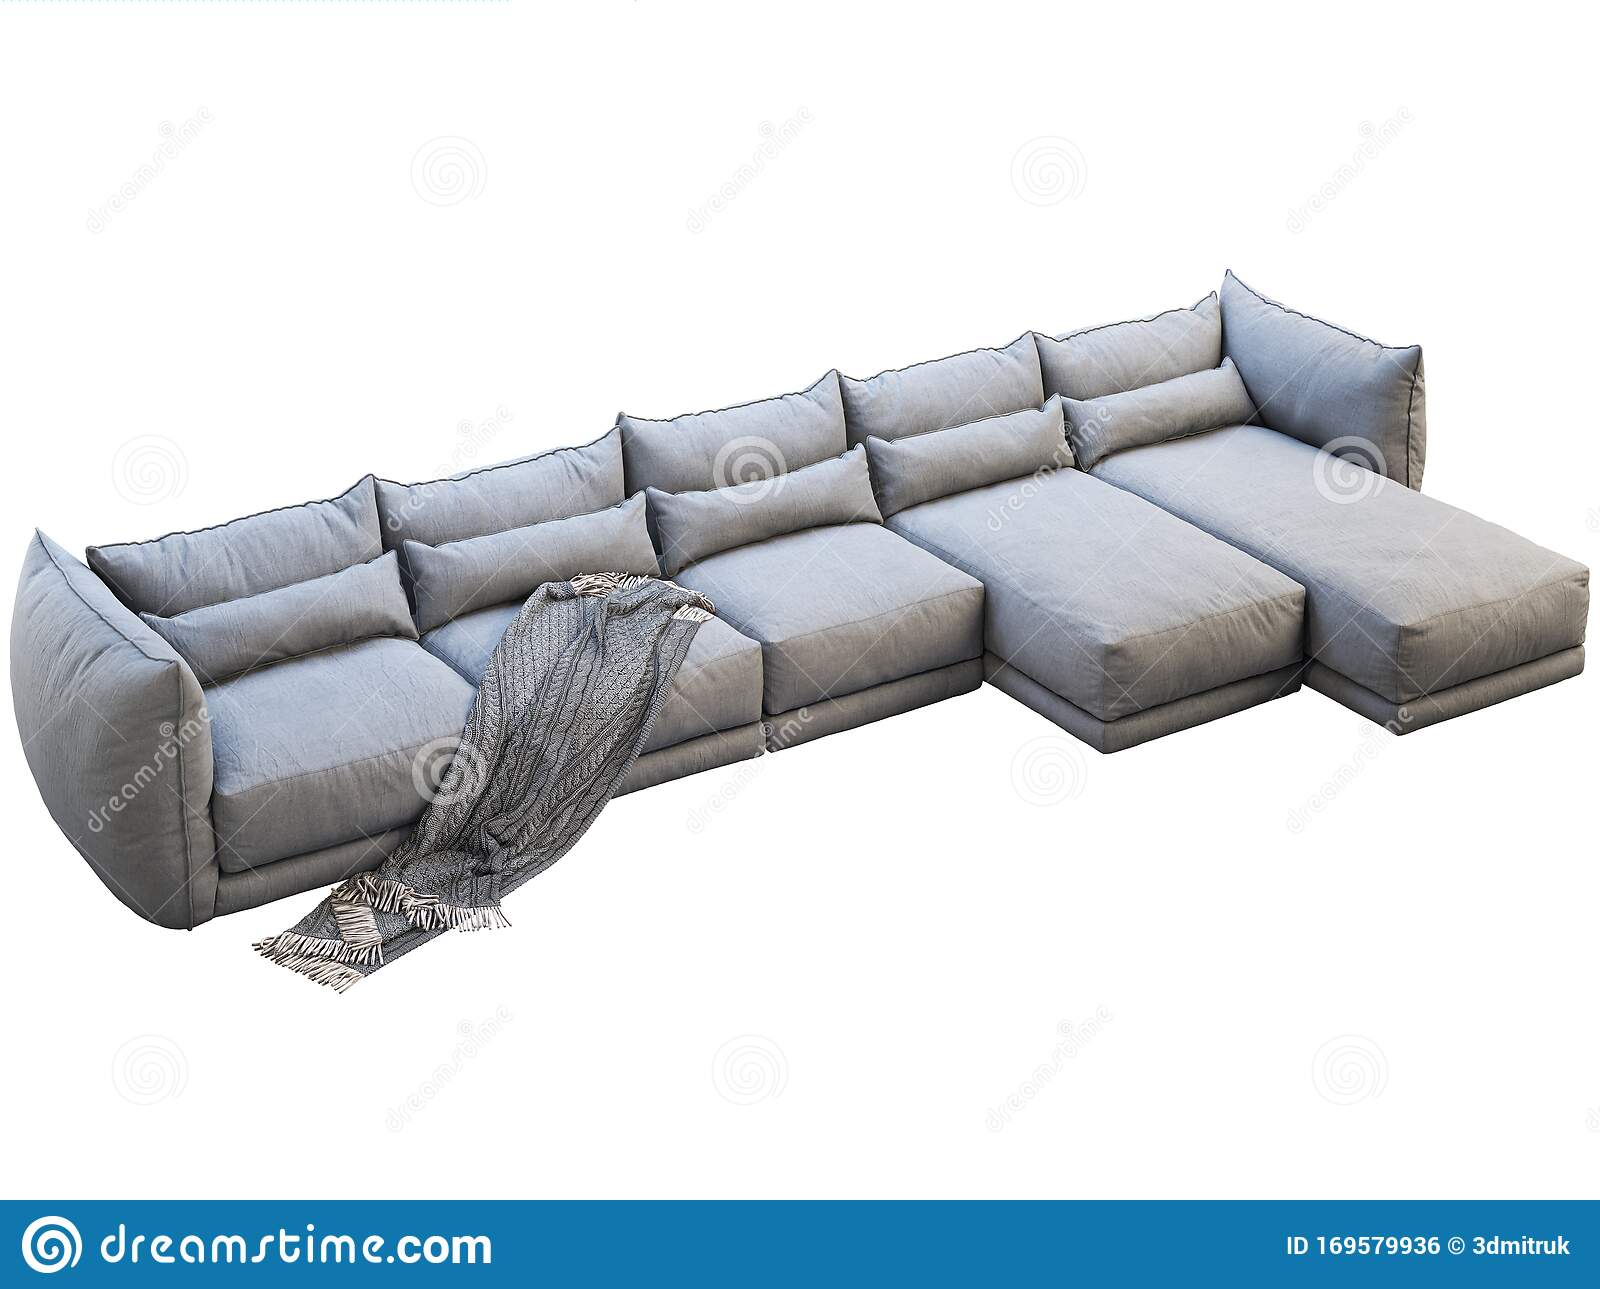 Modern Huge Gray Corner Fabric Sofa With Chaise Lounge 3d Render Stock Illustration Illustration Of Interior Fabric 169579936